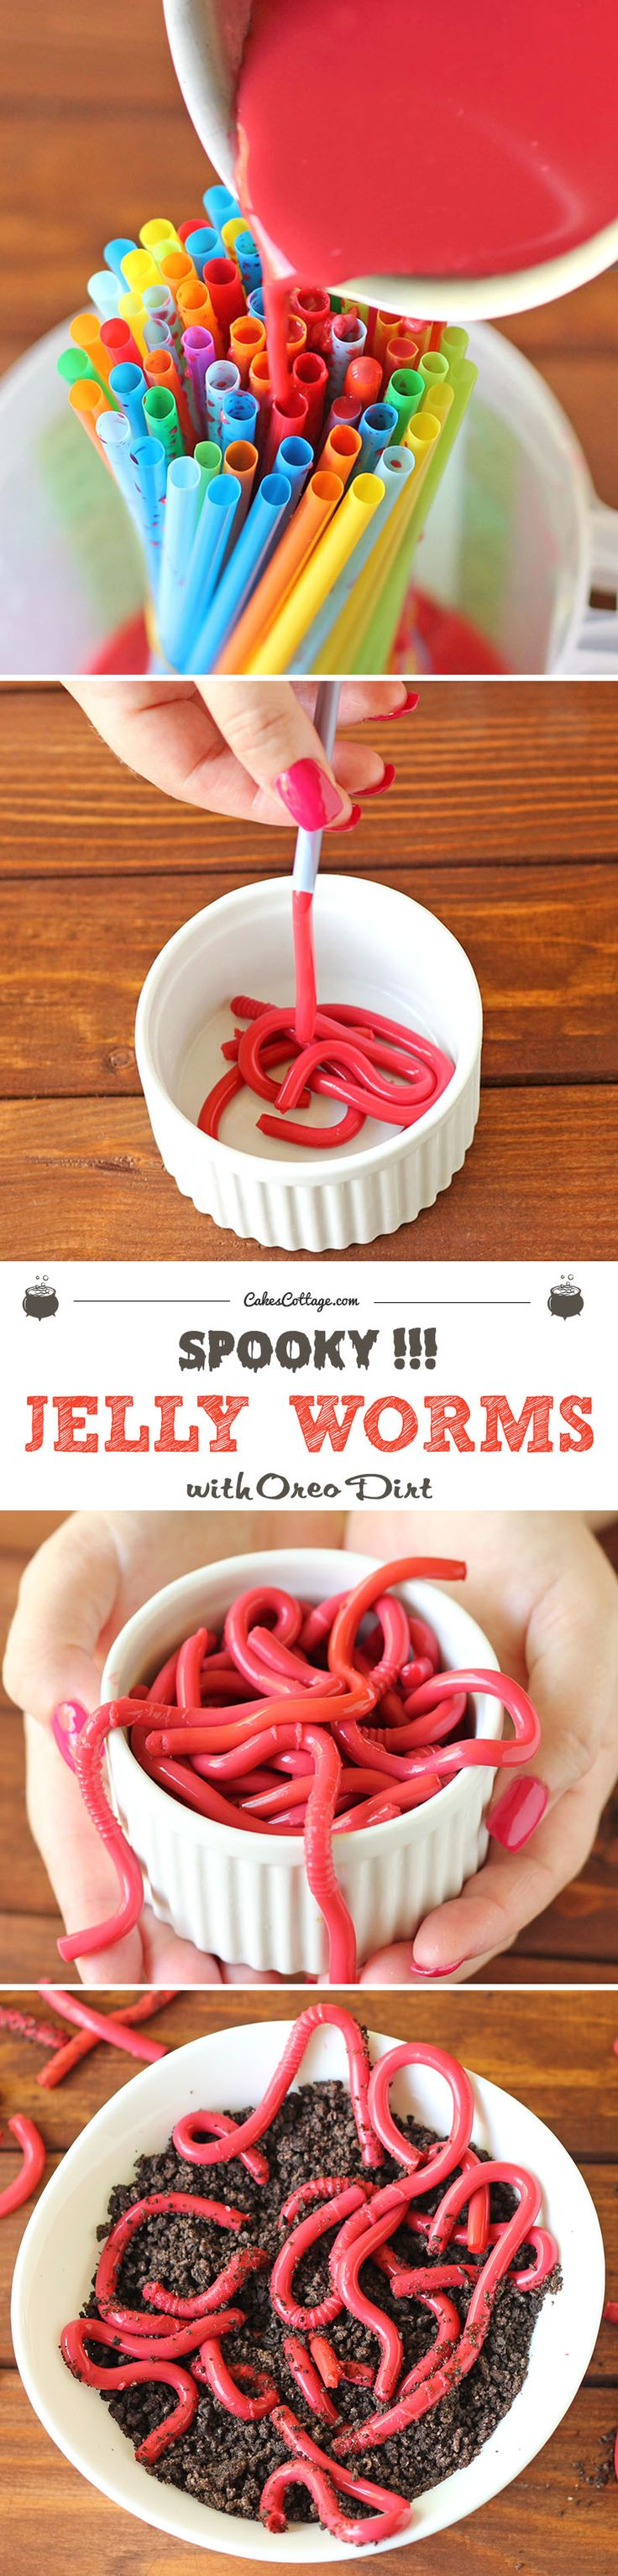 Best 25+ Halloween food dishes ideas on Pinterest | Halloween ...